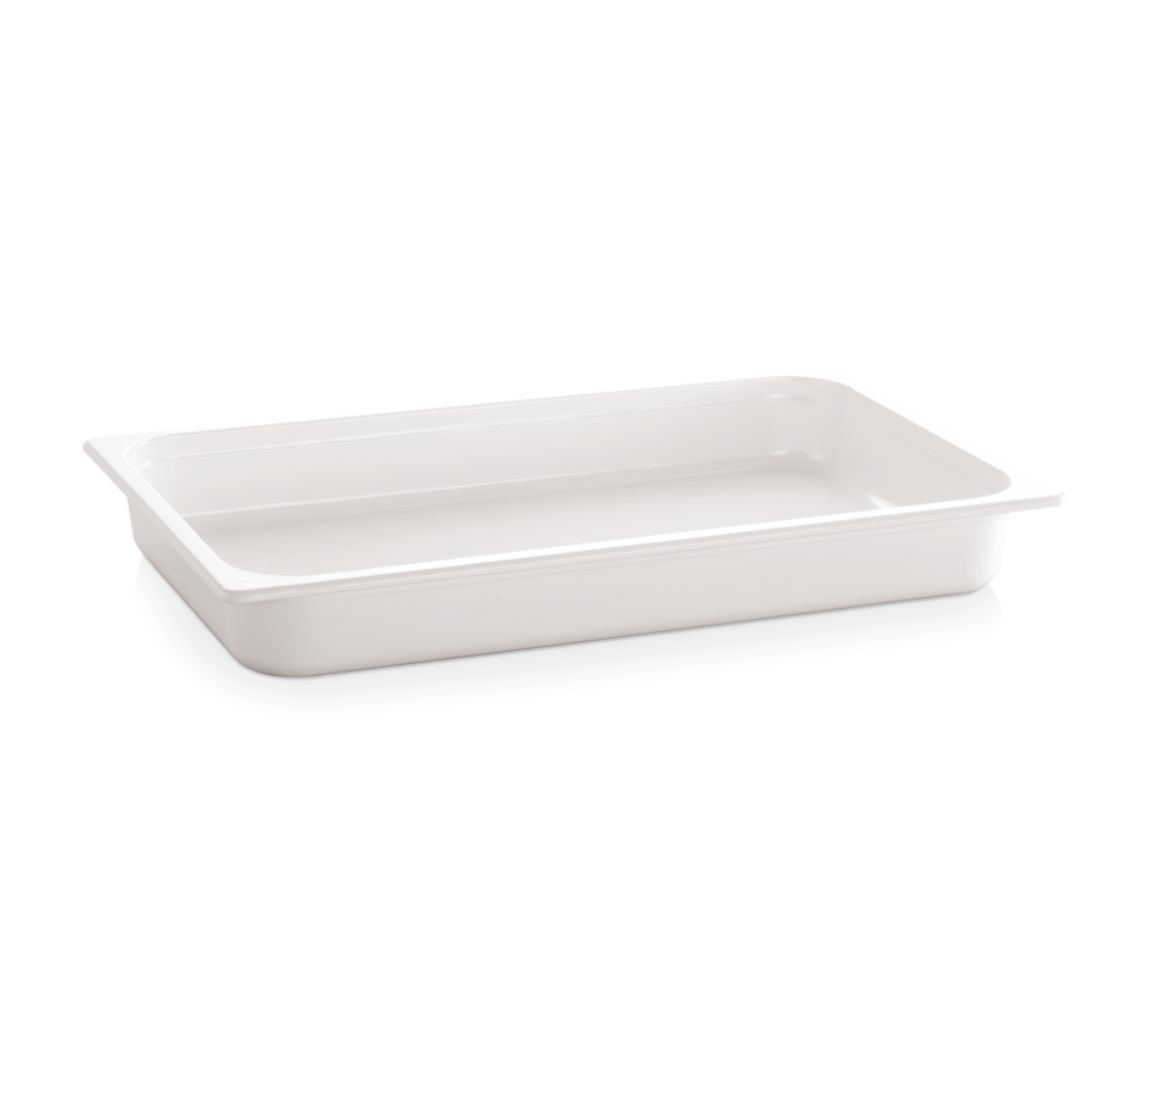 MILTON GASTRONORM 1/1 65MM BUFFET CONTAINER 65 mm